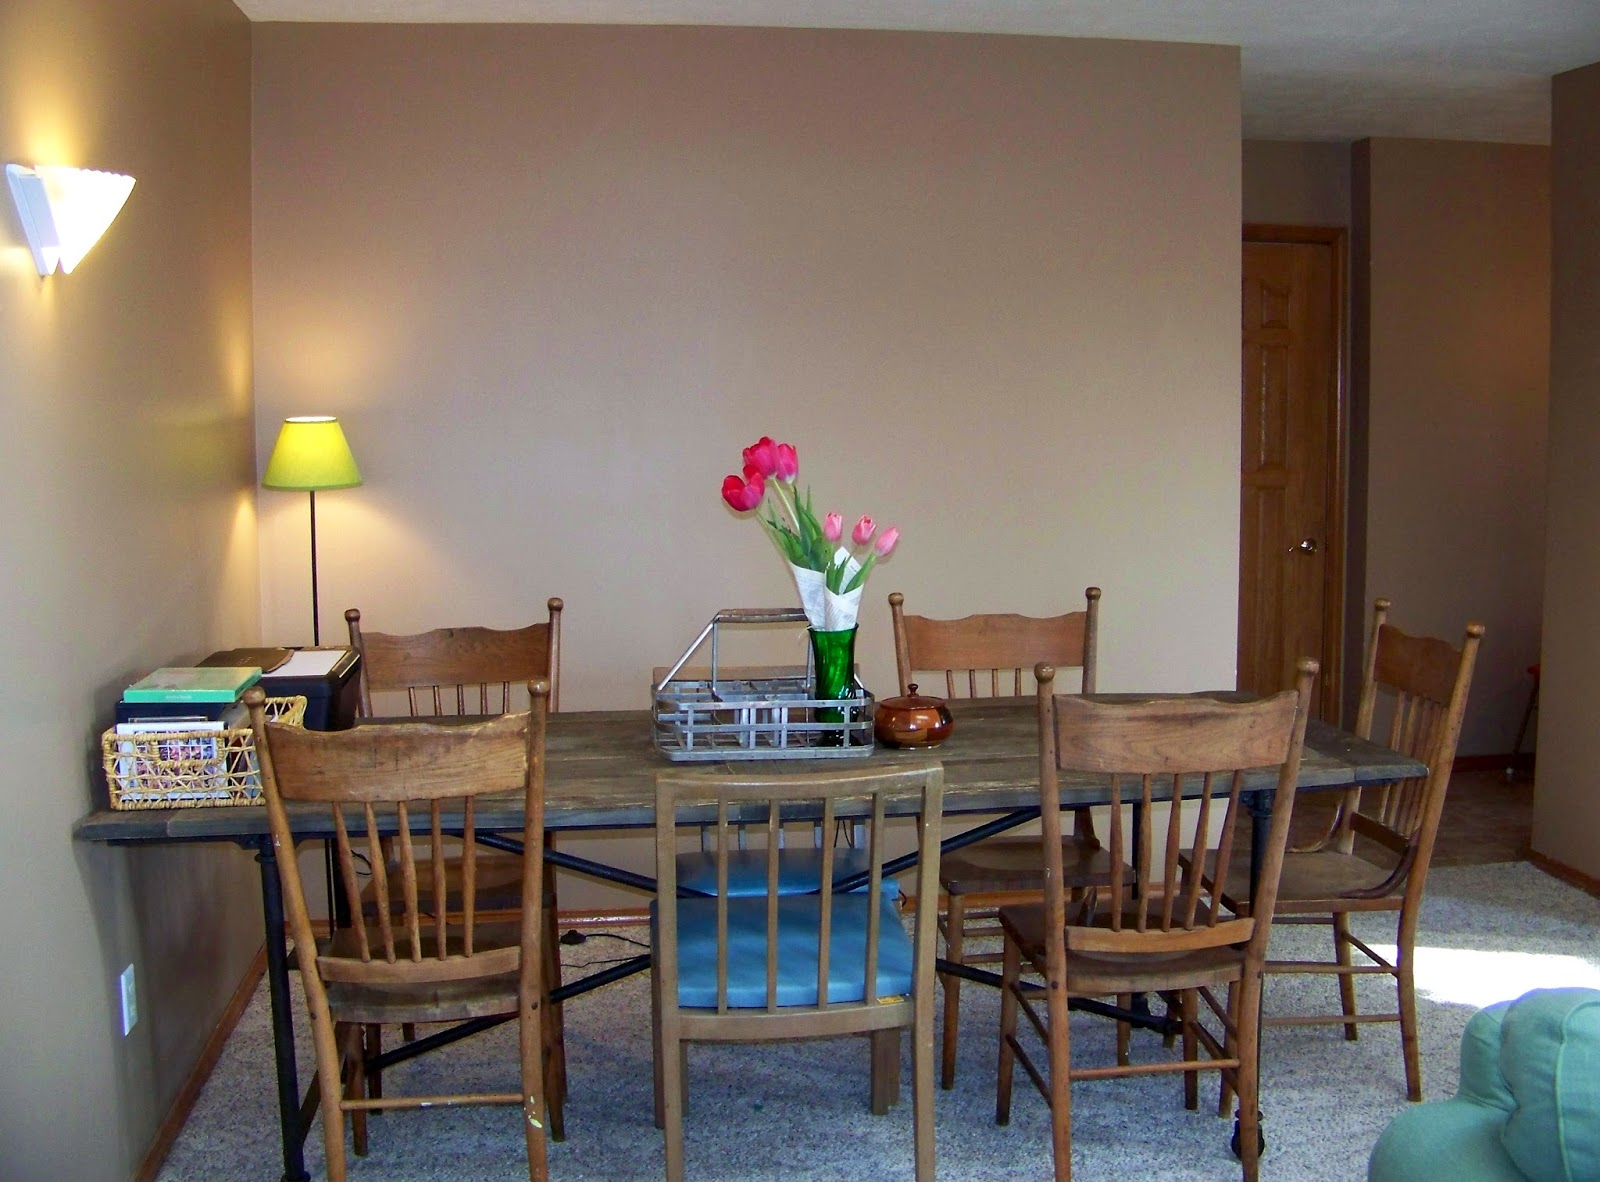 Here Are Some Pictures Of Our Current Dining Room Area